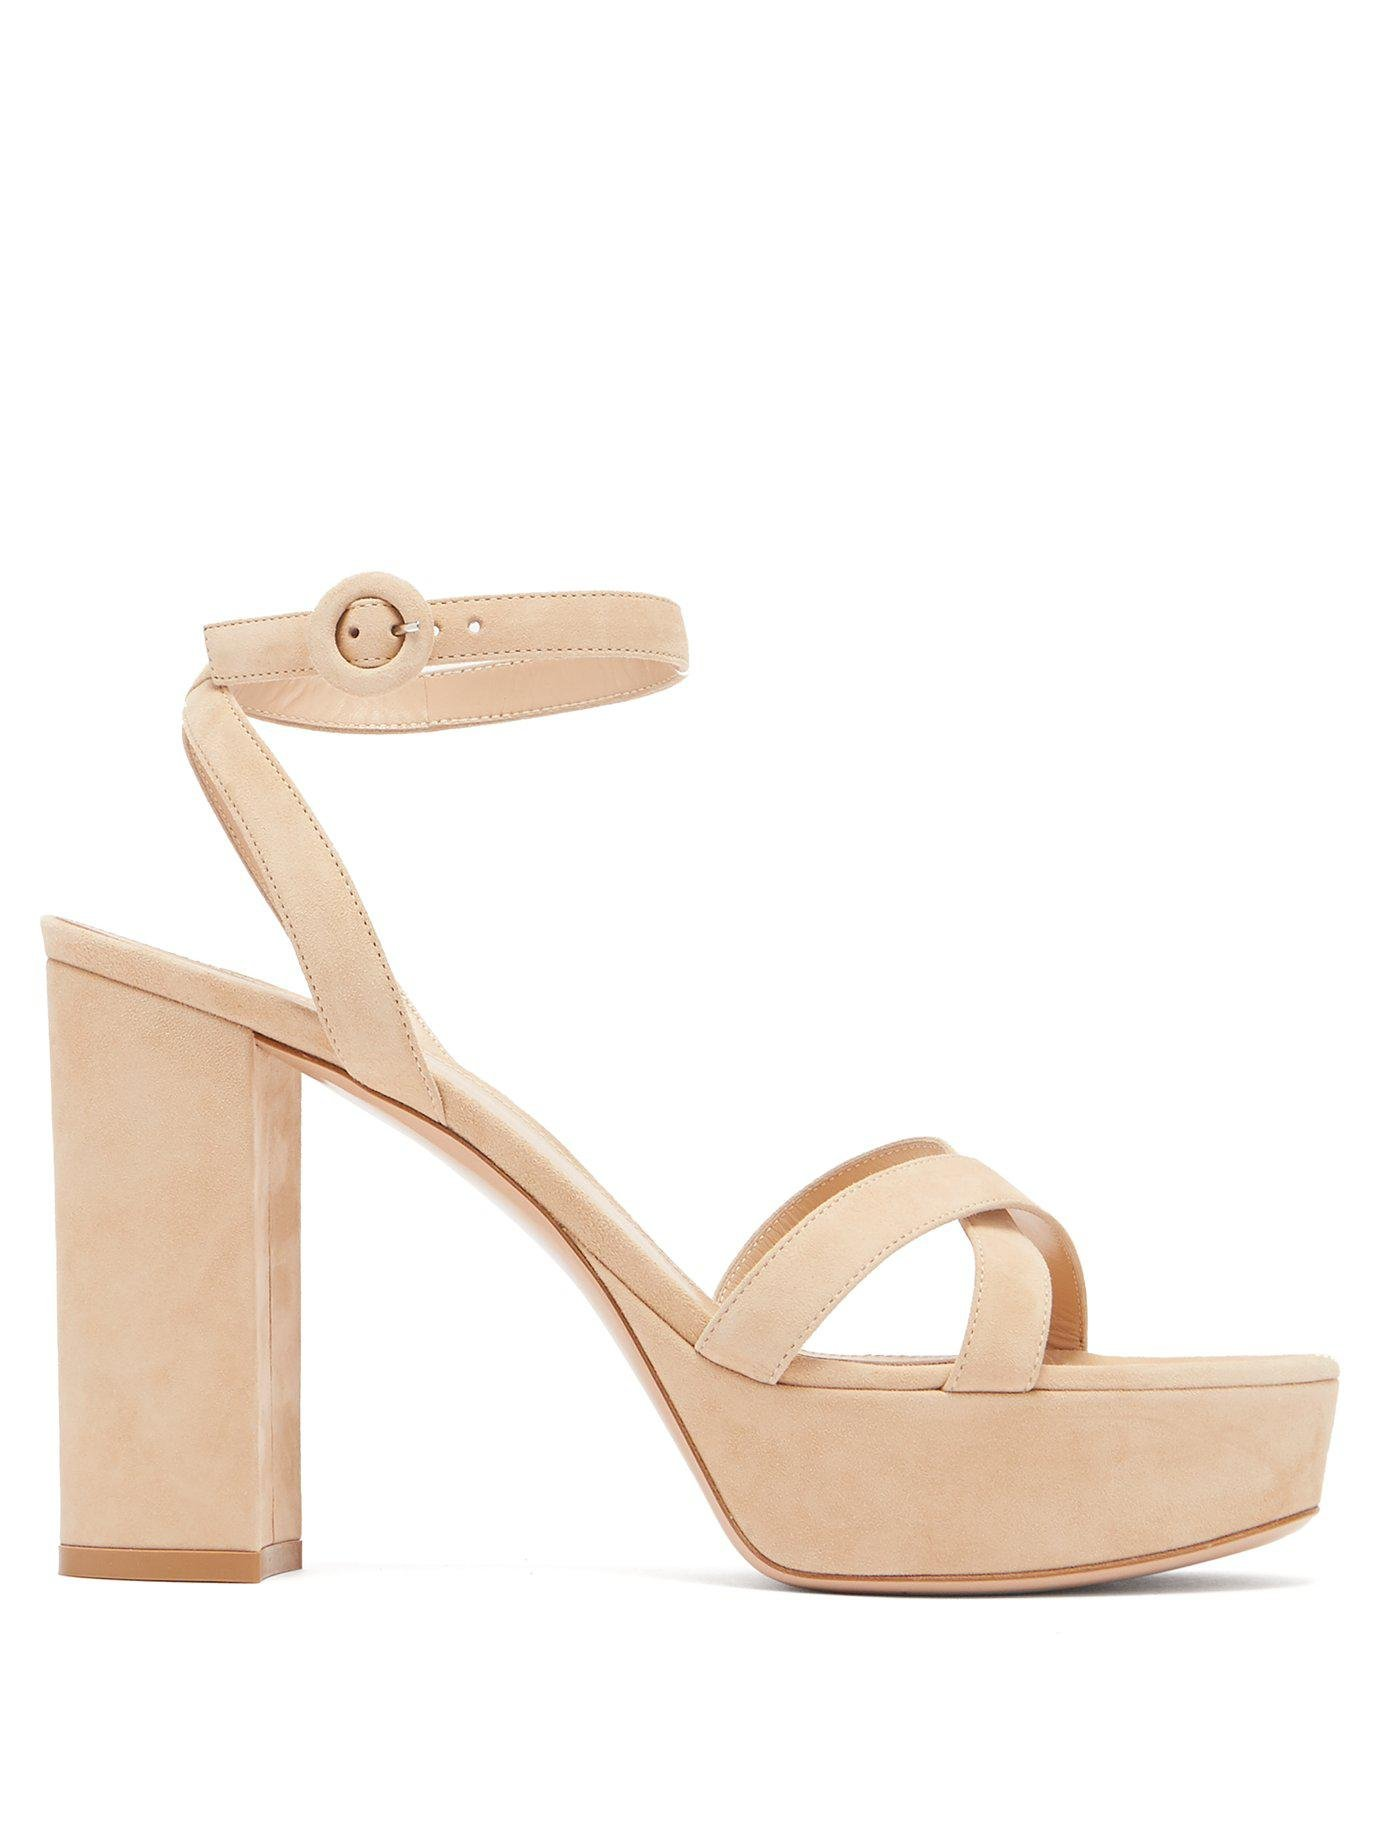 fbc18591db4 Lyst - Gianvito Rossi Poppy 100 Suede Platform Sandals in Natural